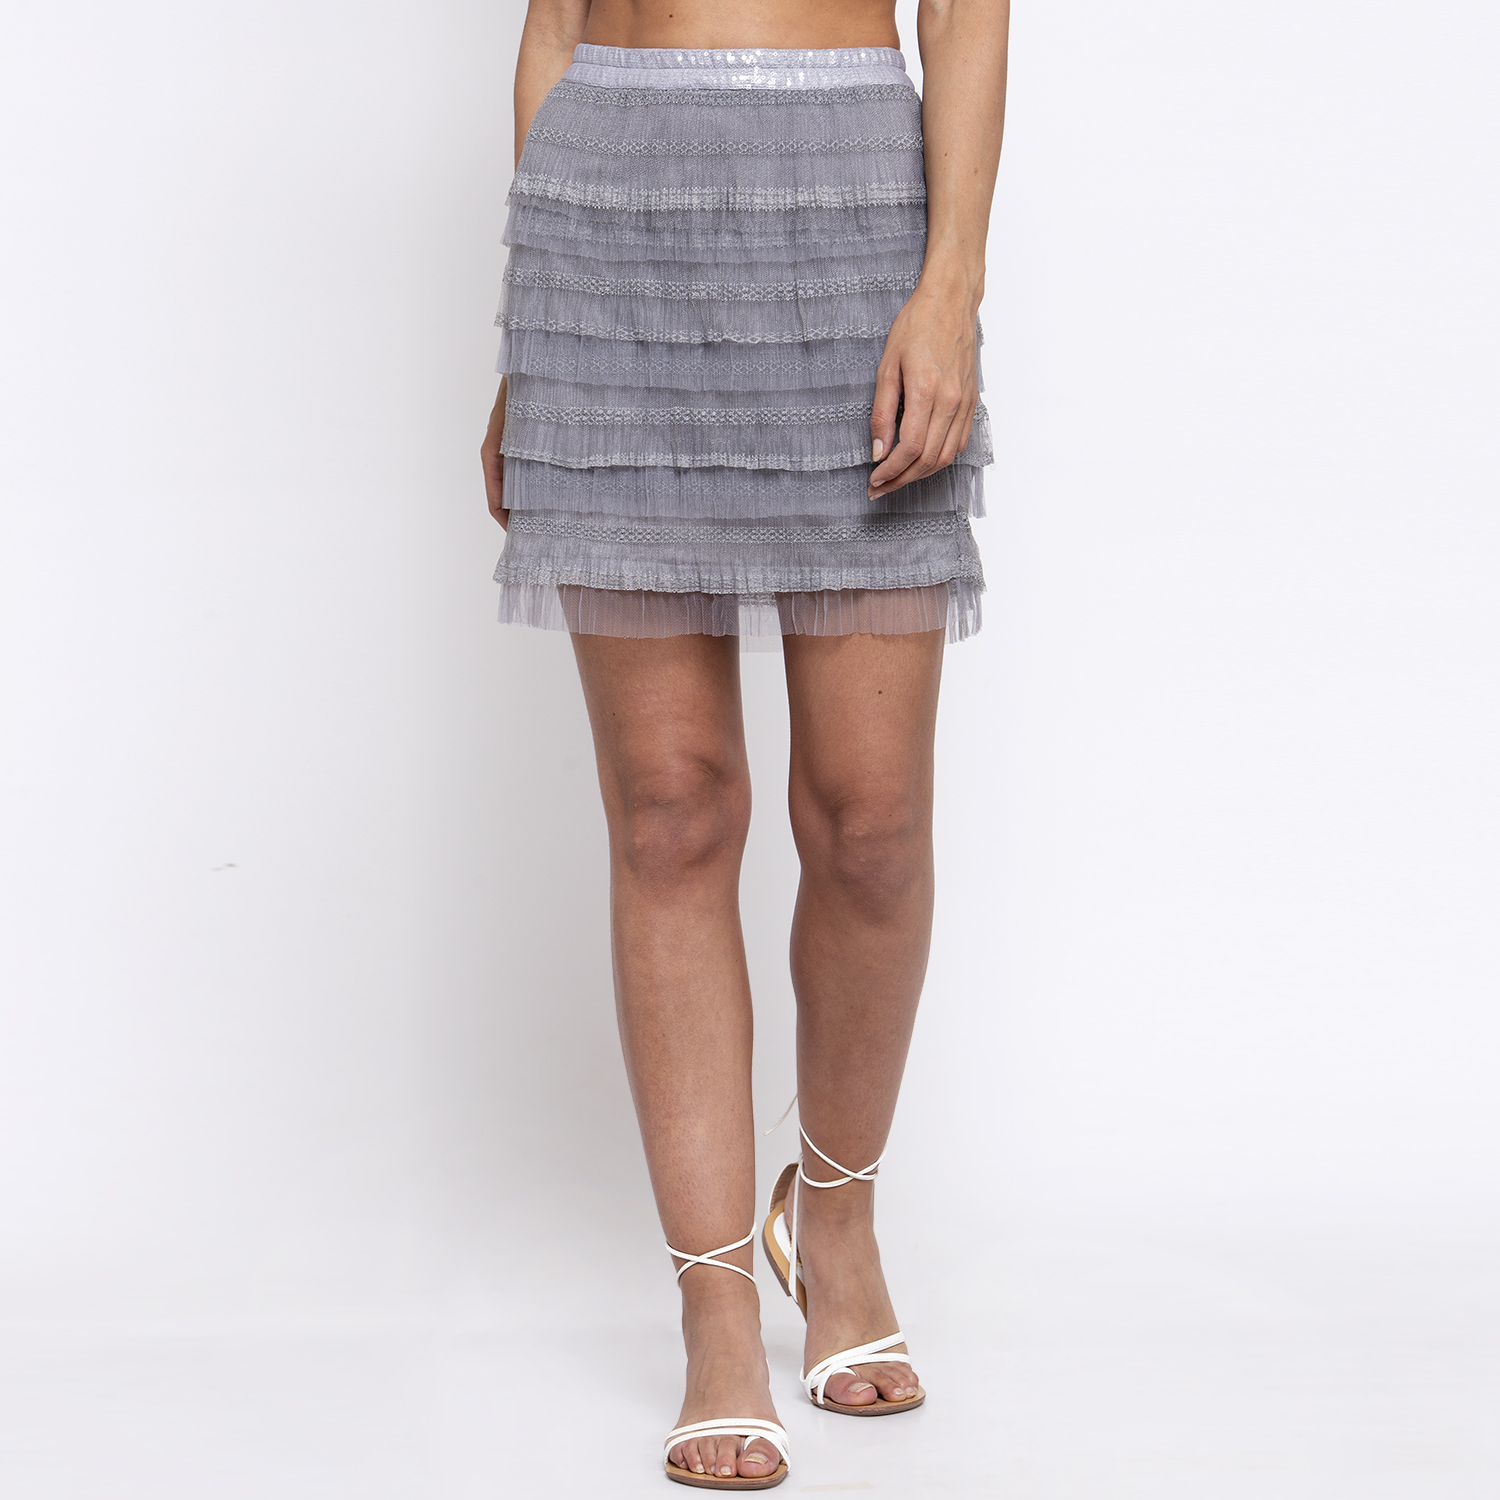 Short grey layered skirt with net frill